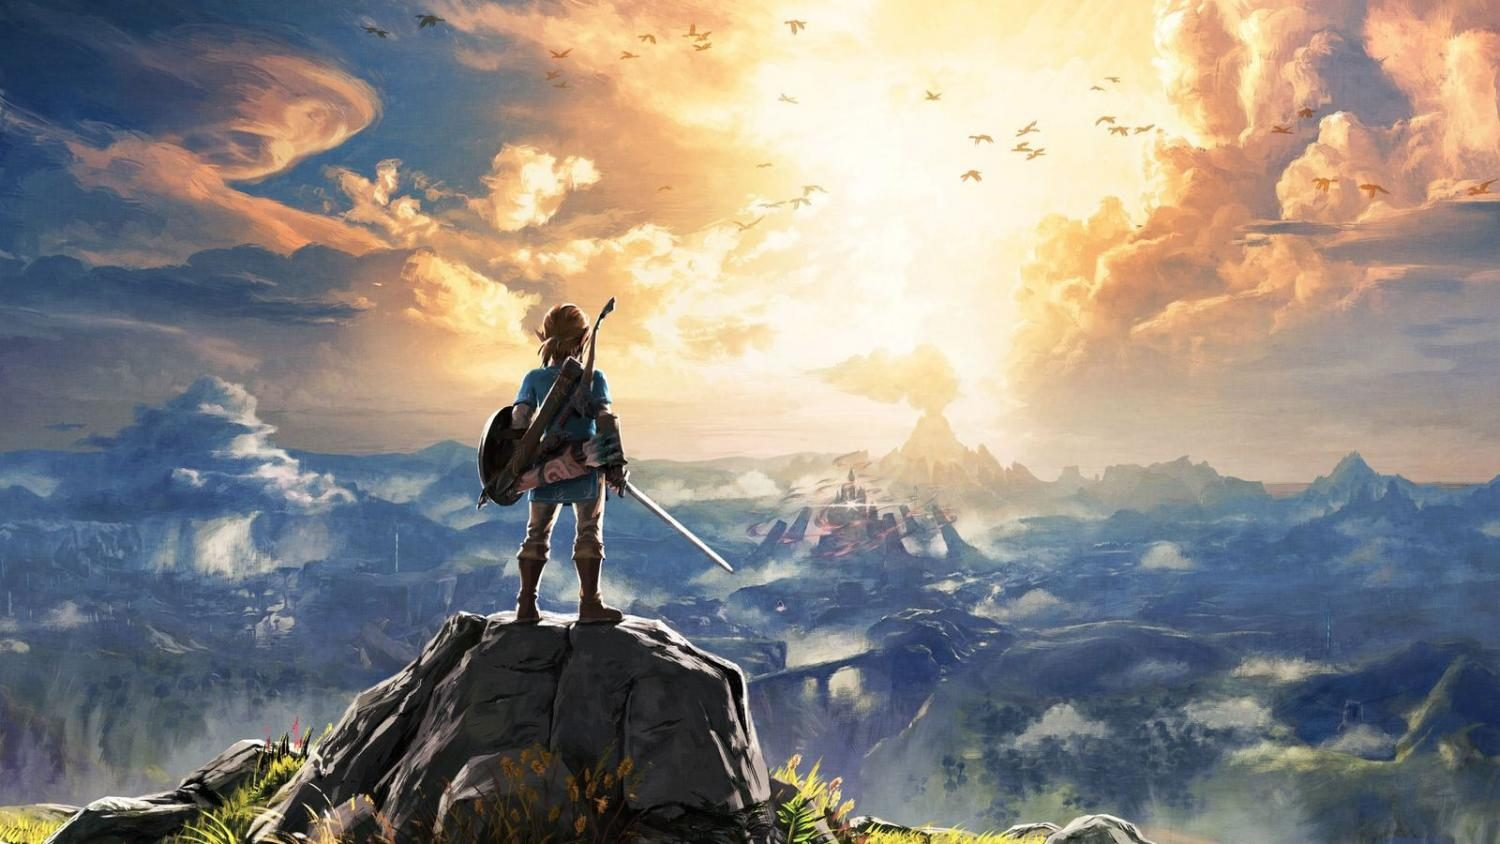 Cover+art+for+The+Legend+of+Zelda%3A+Breath+of+the+Wild